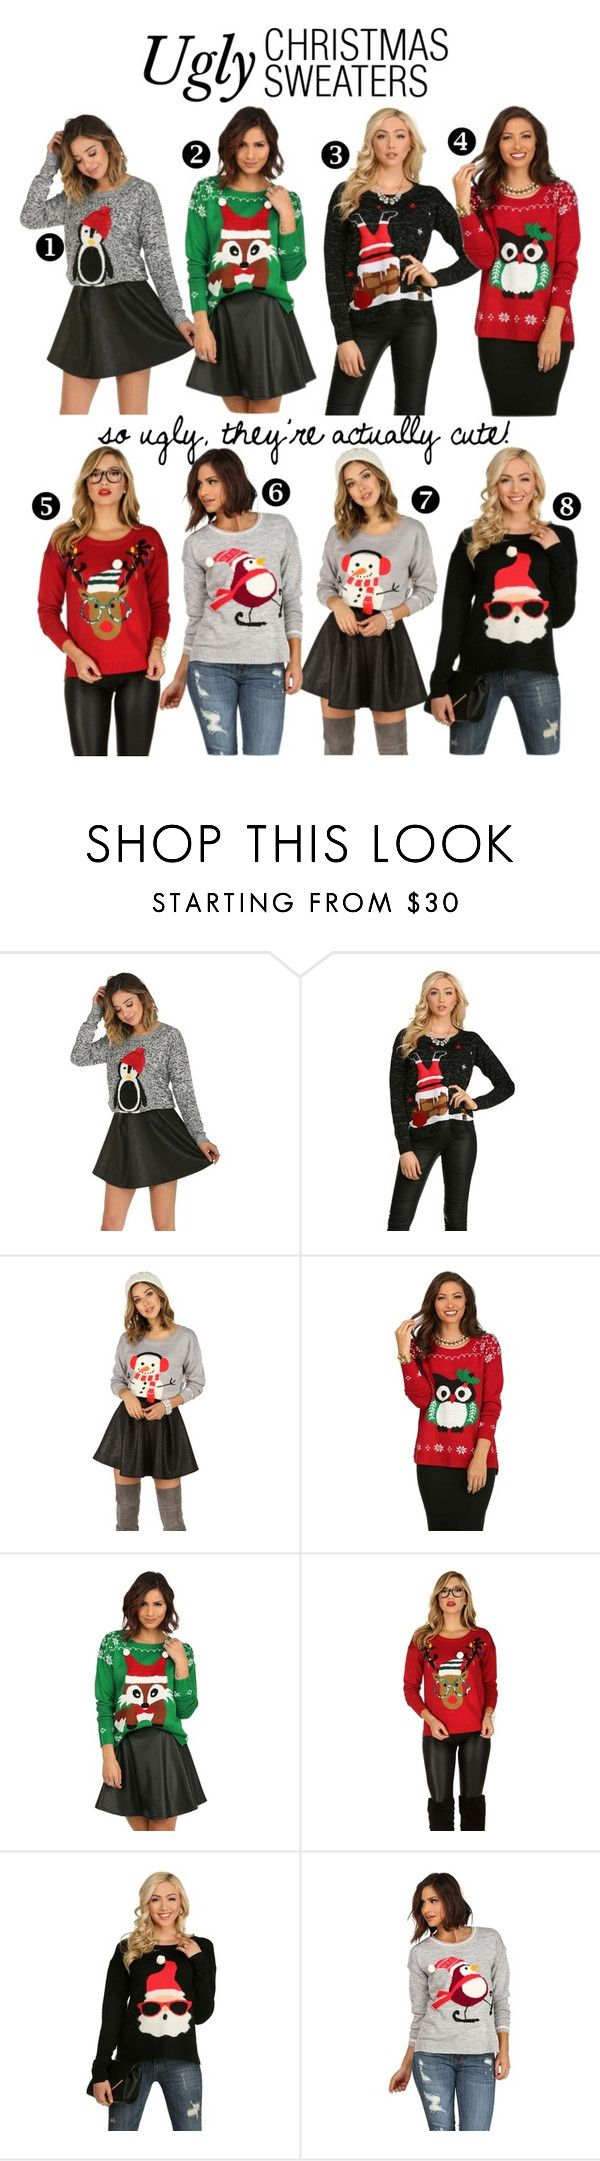 211 best Ugly Christmas Sweater Party Ideas images on Pinterest ...